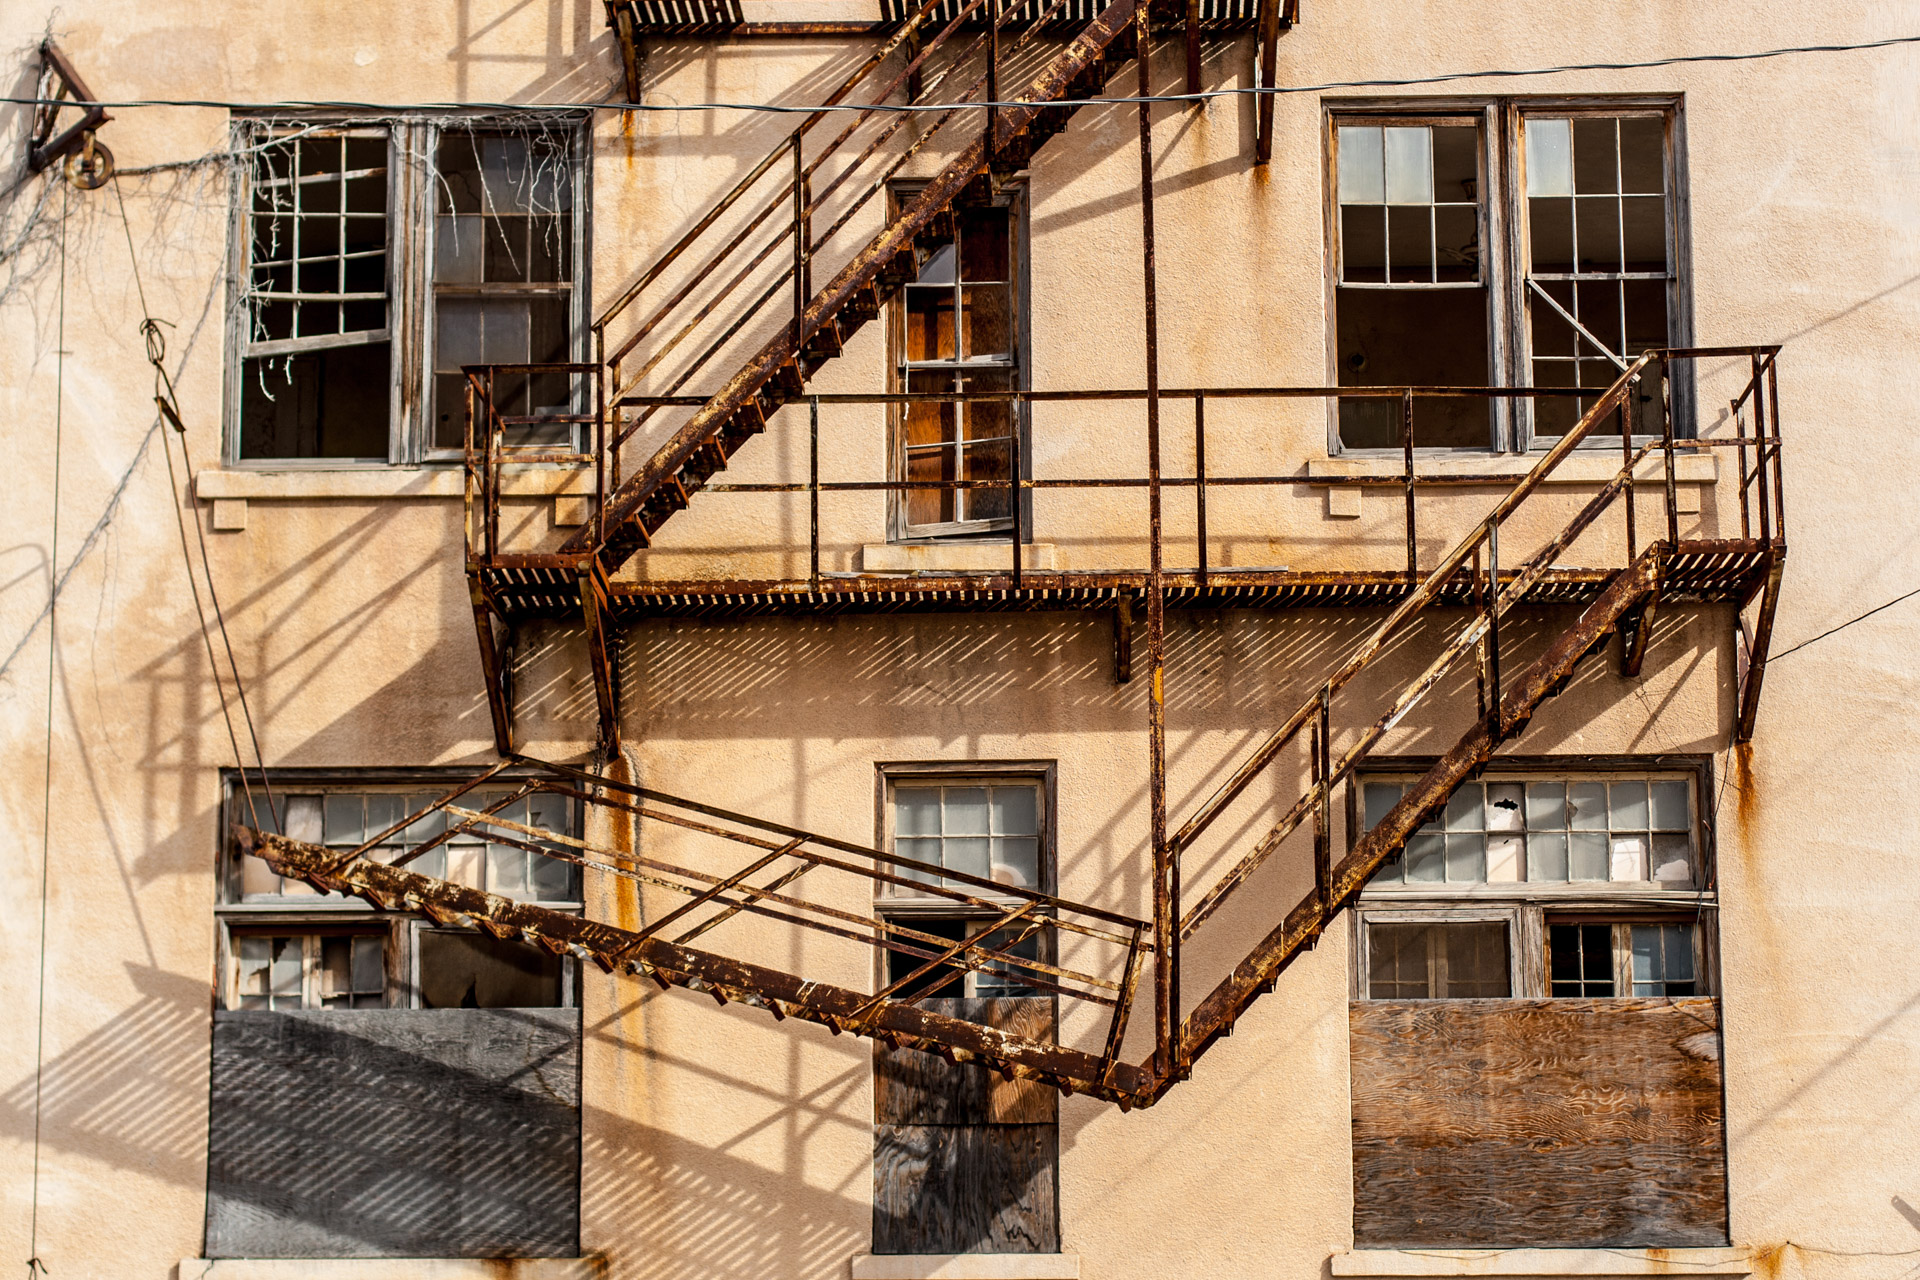 Ozona, Texas - The Hotel Ozona (back stairs)